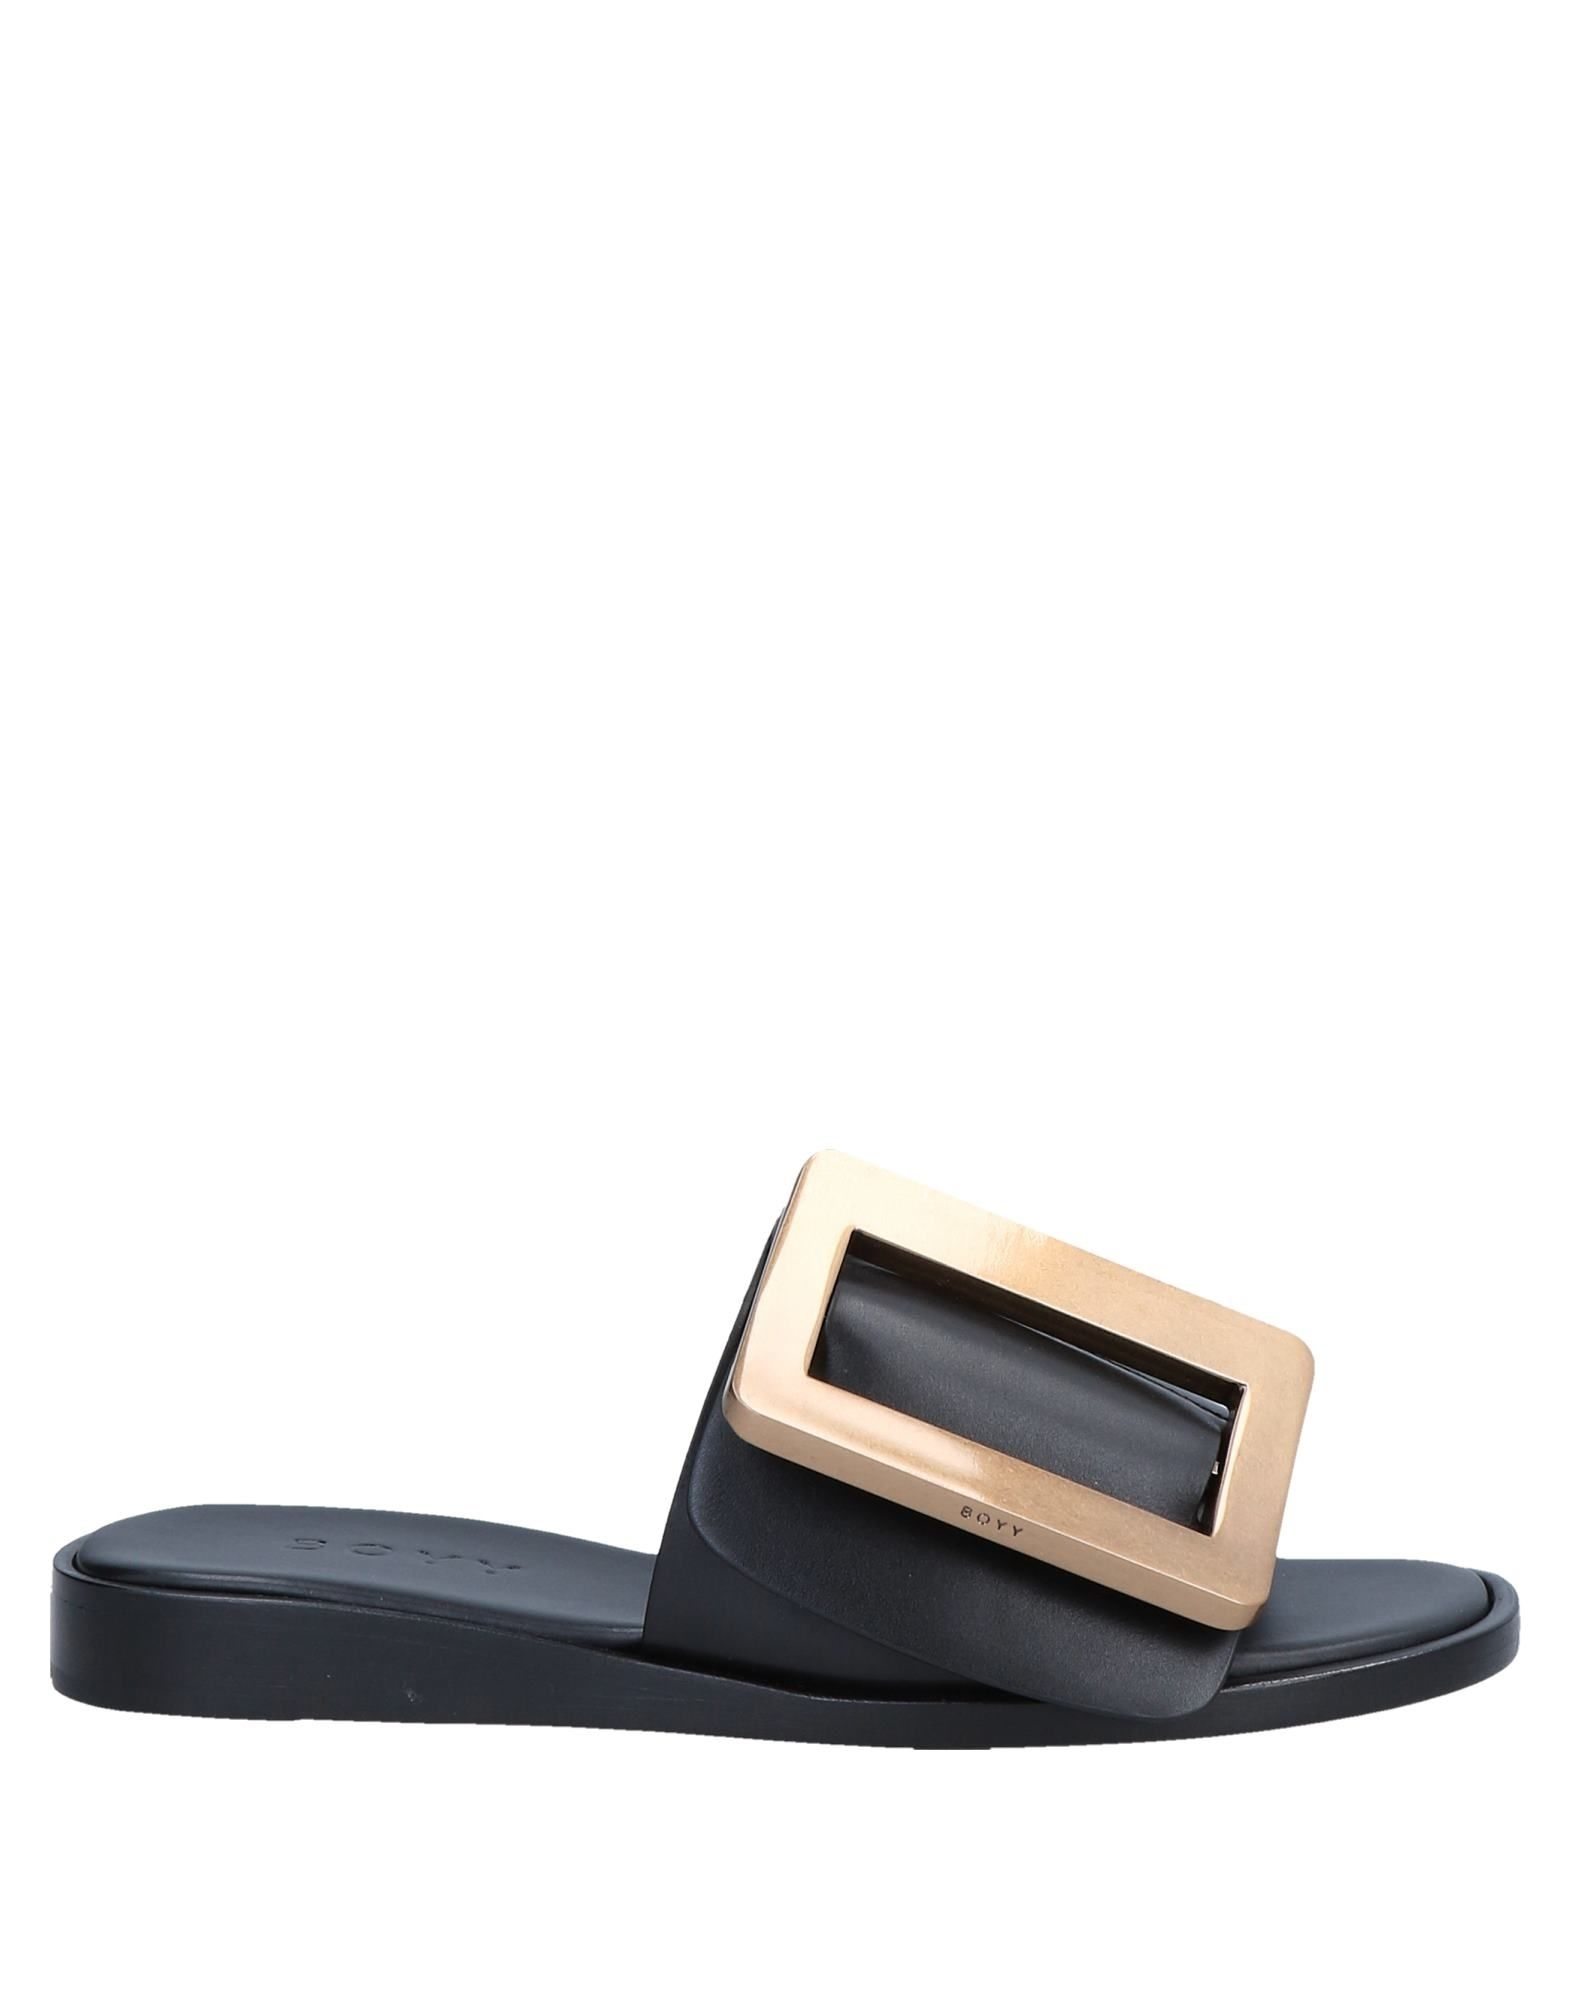 BOYY Sandals in Black